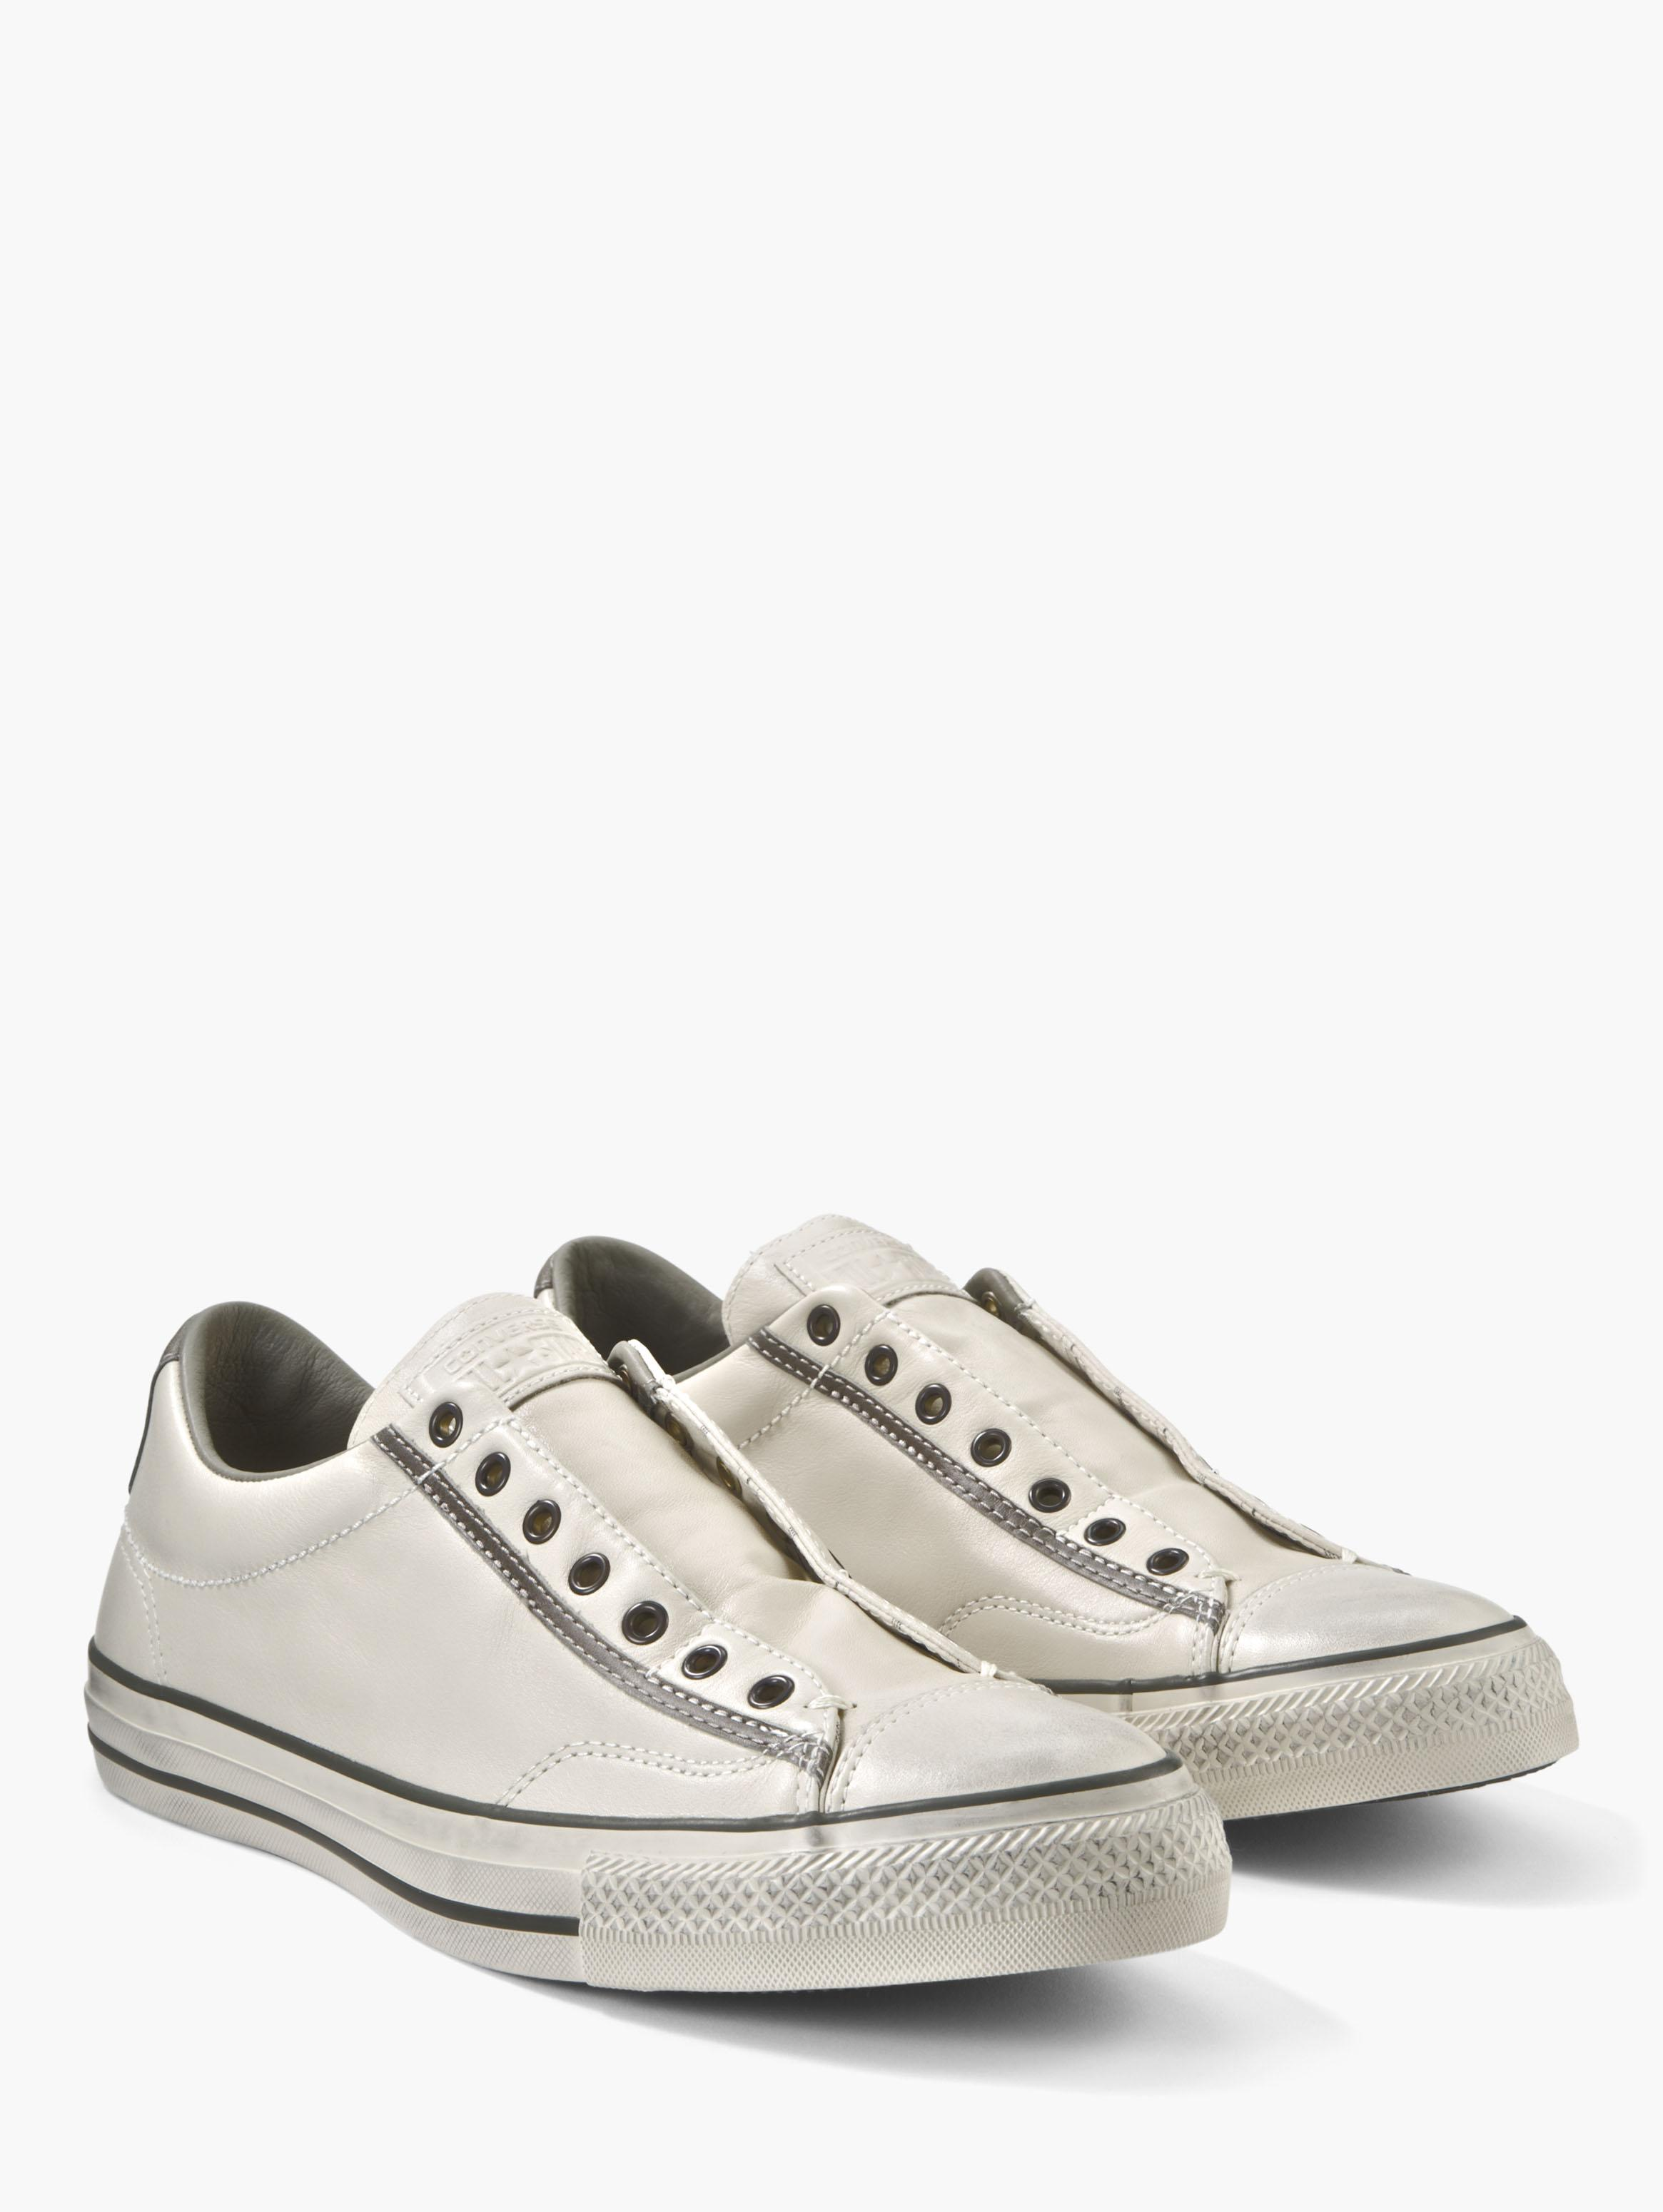 converse shoes white. turtle dove leather lacessless slip on converse shoes white